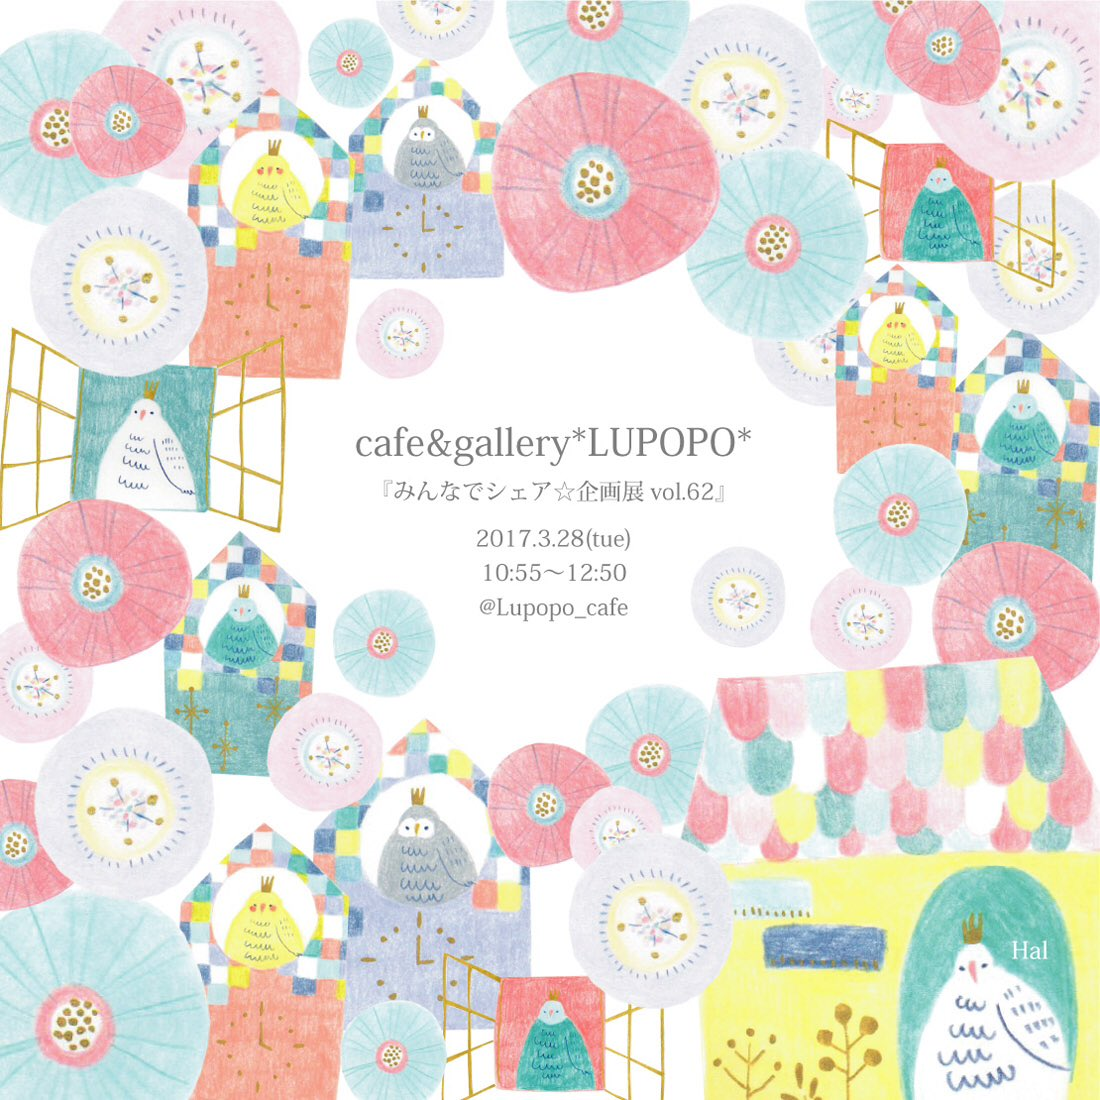 Lupopo Cafegallery コーヒー展vol7開催中131 211 On Twitter